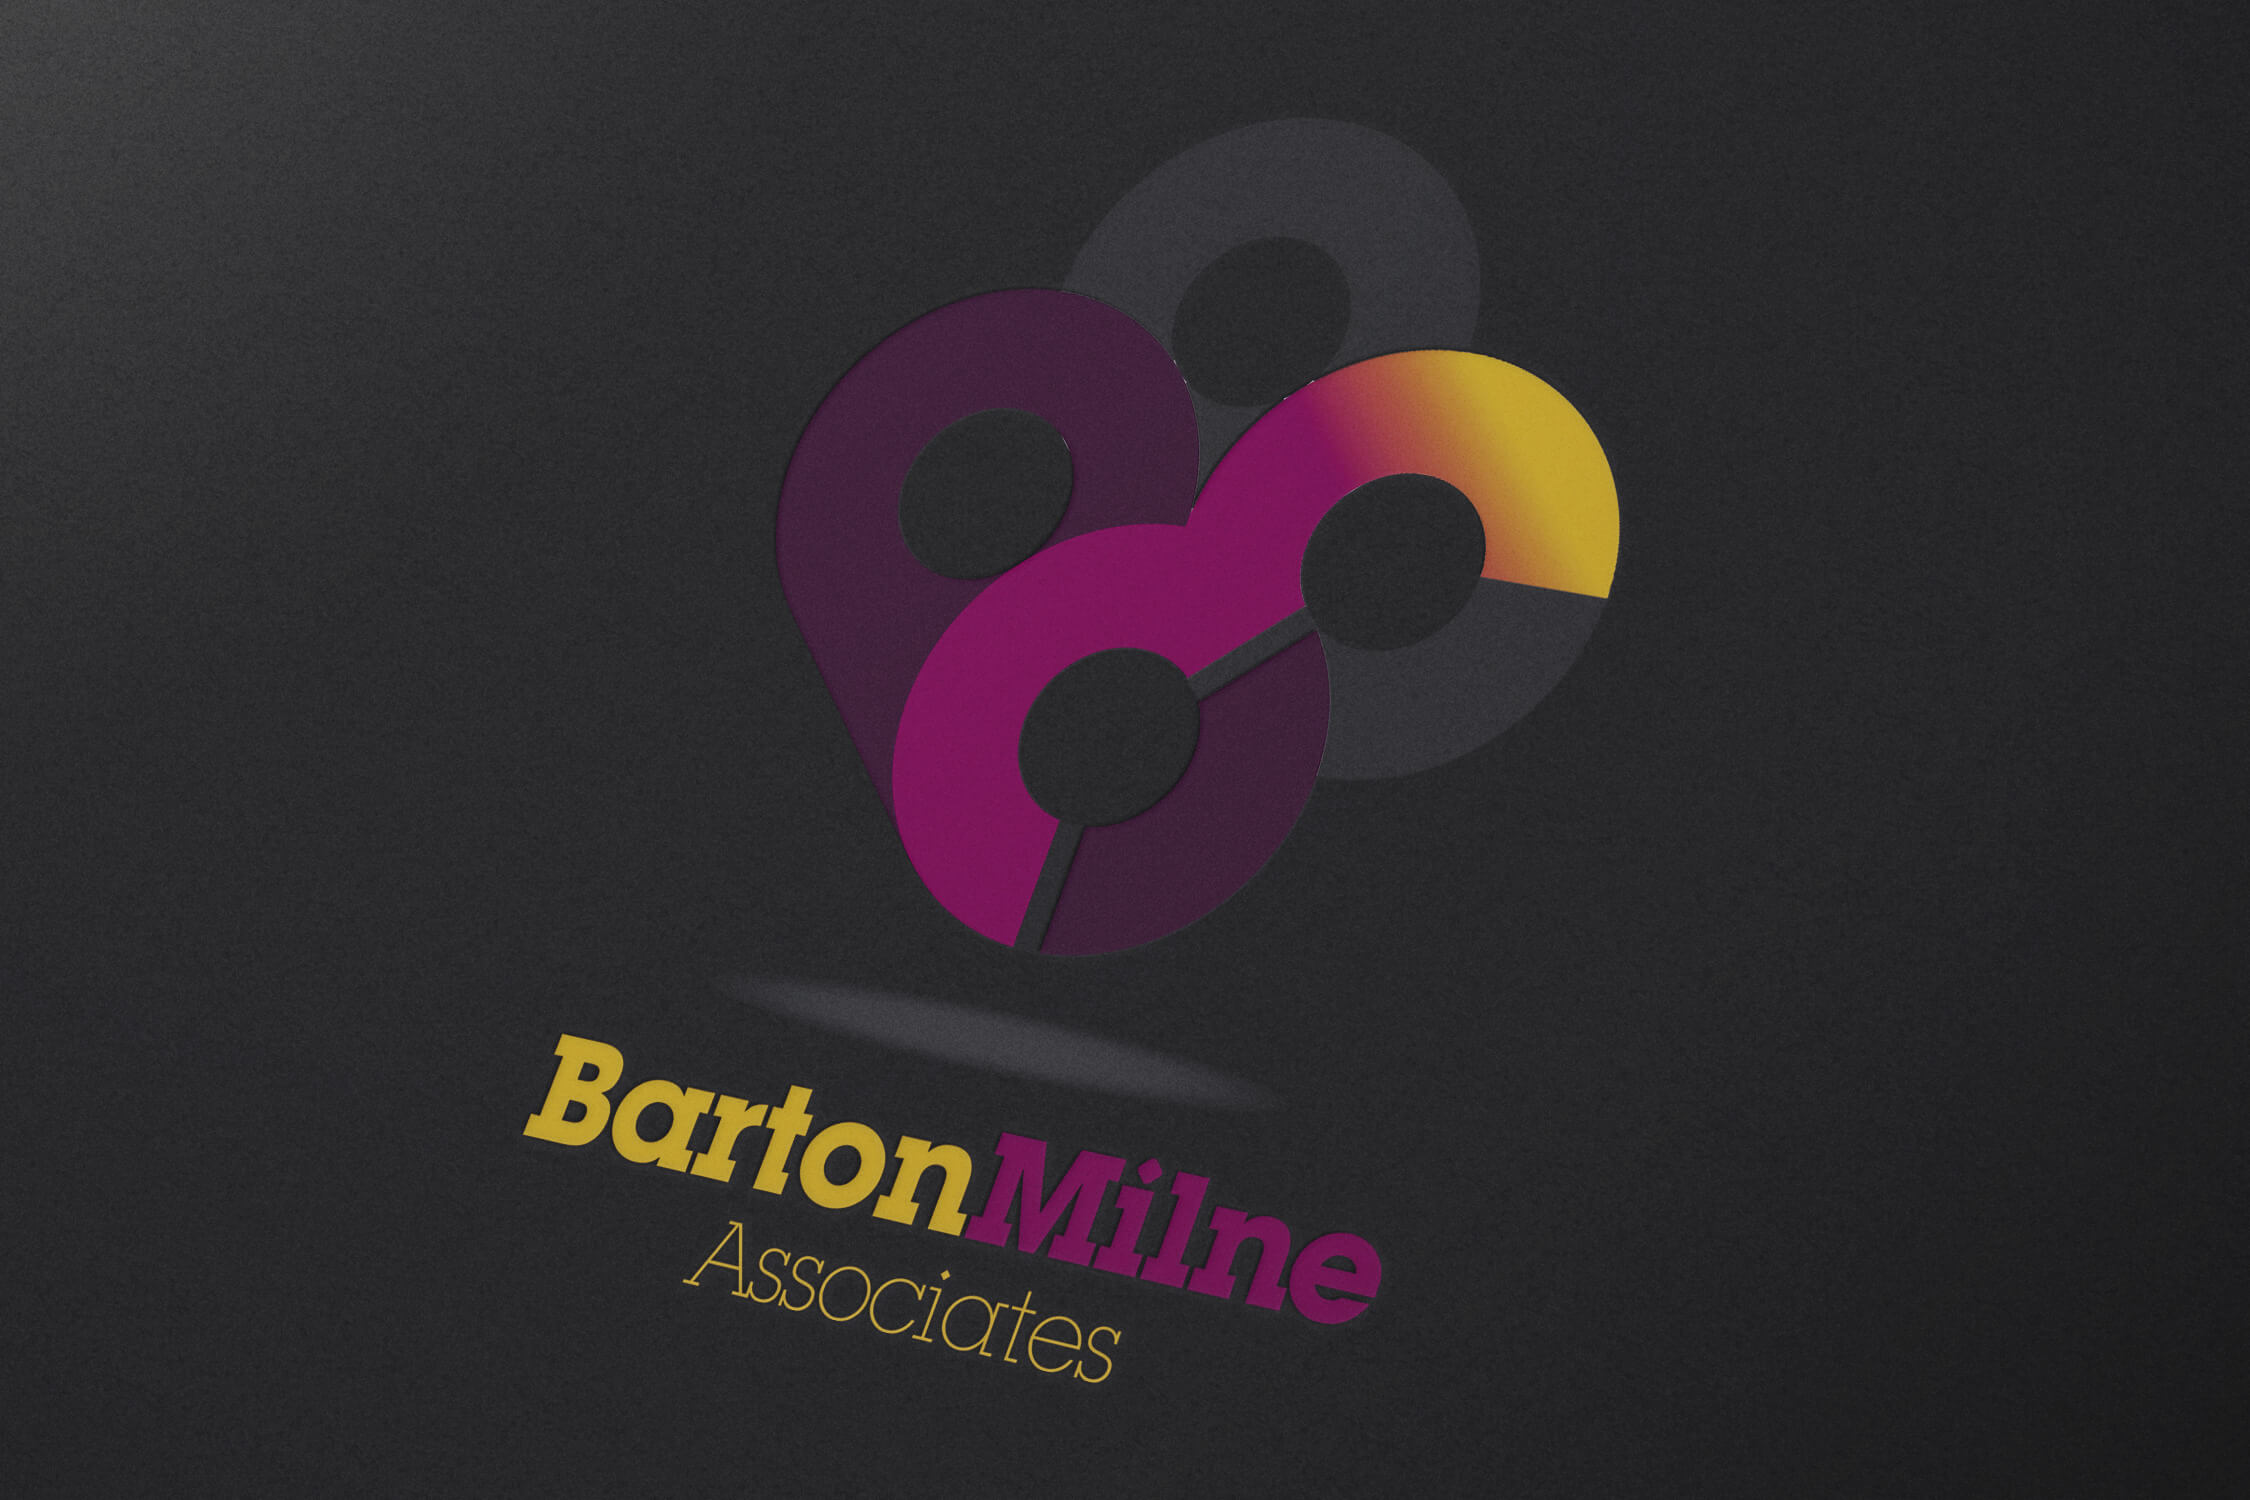 The Barton Milne Associates logo on dark paper background